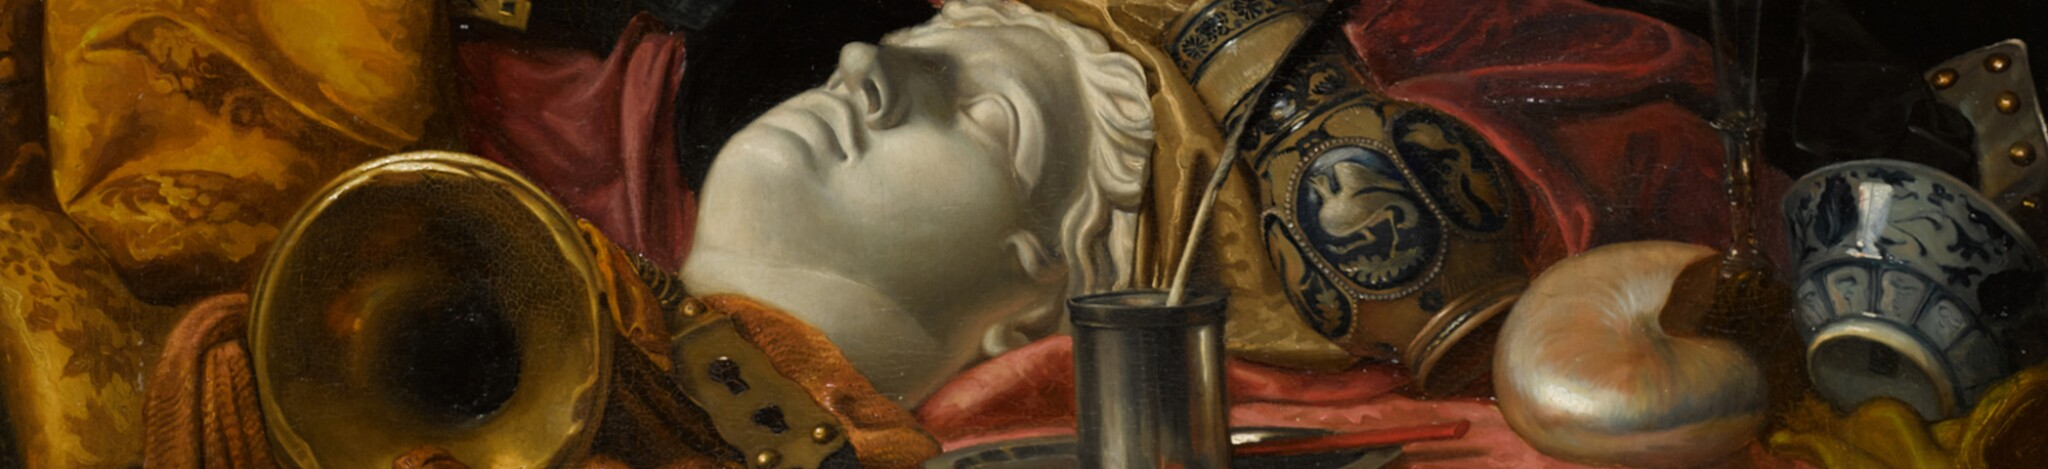 Old Masters Online | Part I: Property from the SØR Rusche Collection | Part II: Property from Various Owners